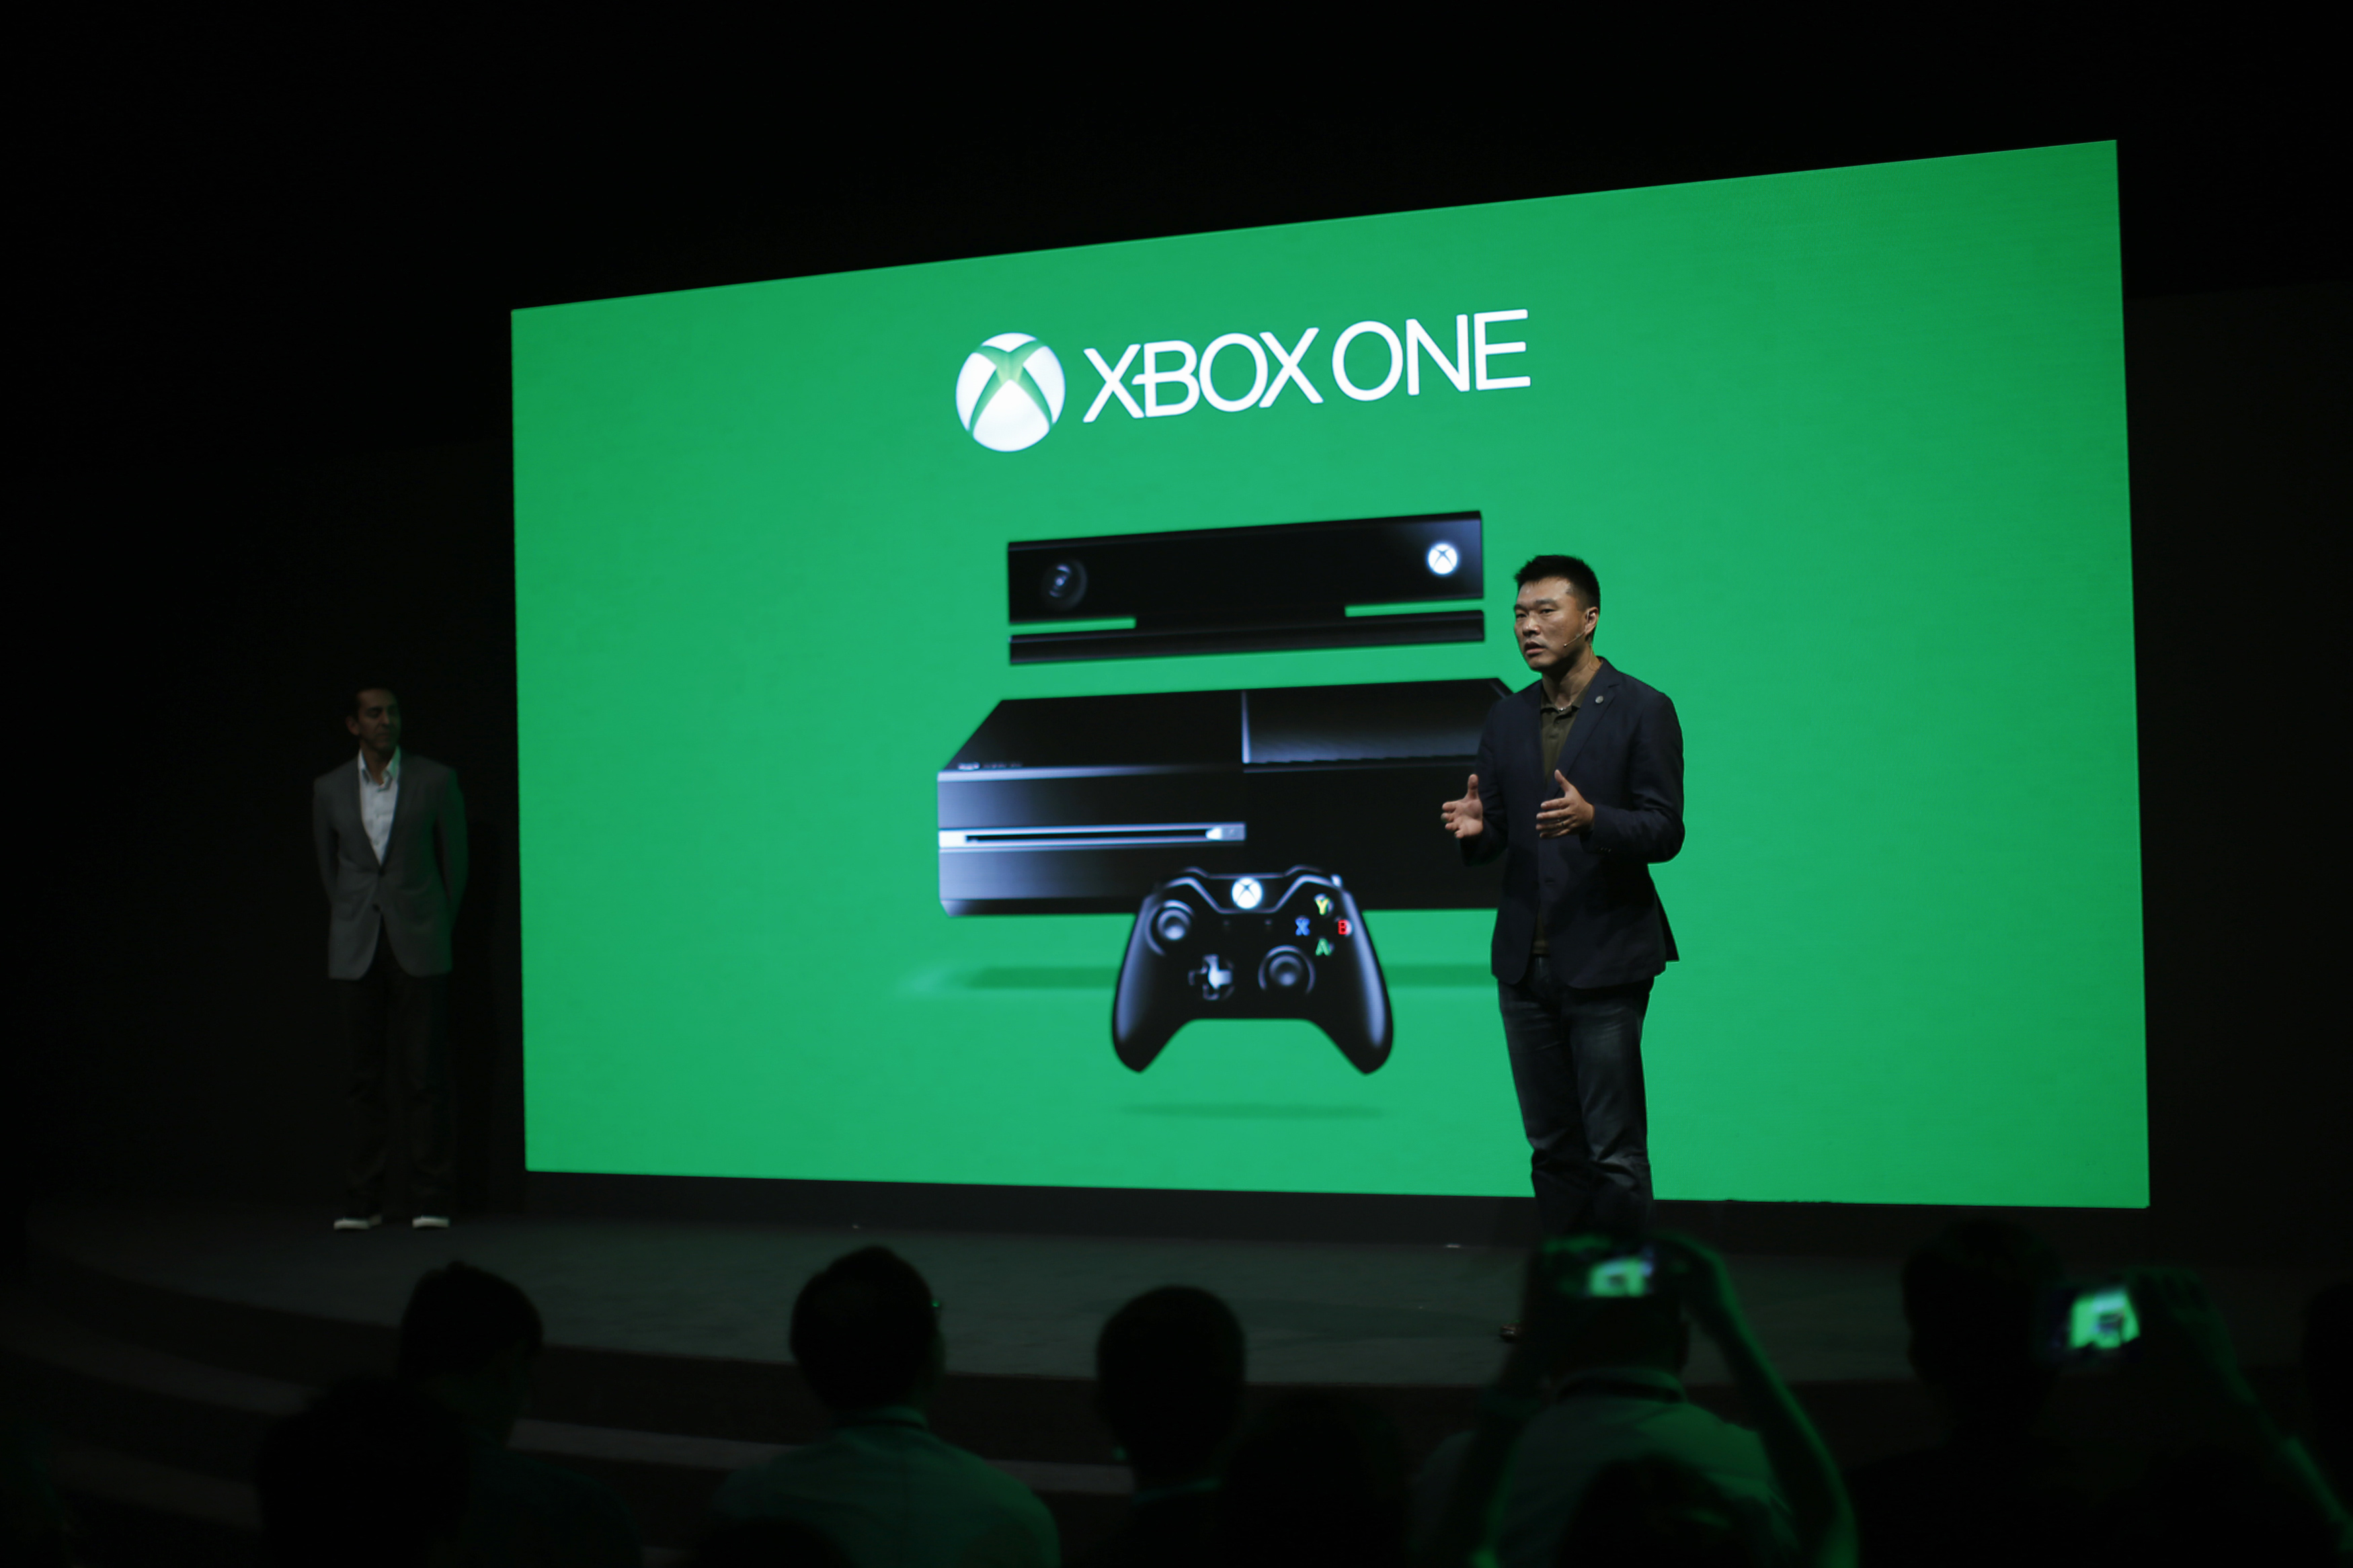 Rumor Mill: Microsoft working on new Xbox projects